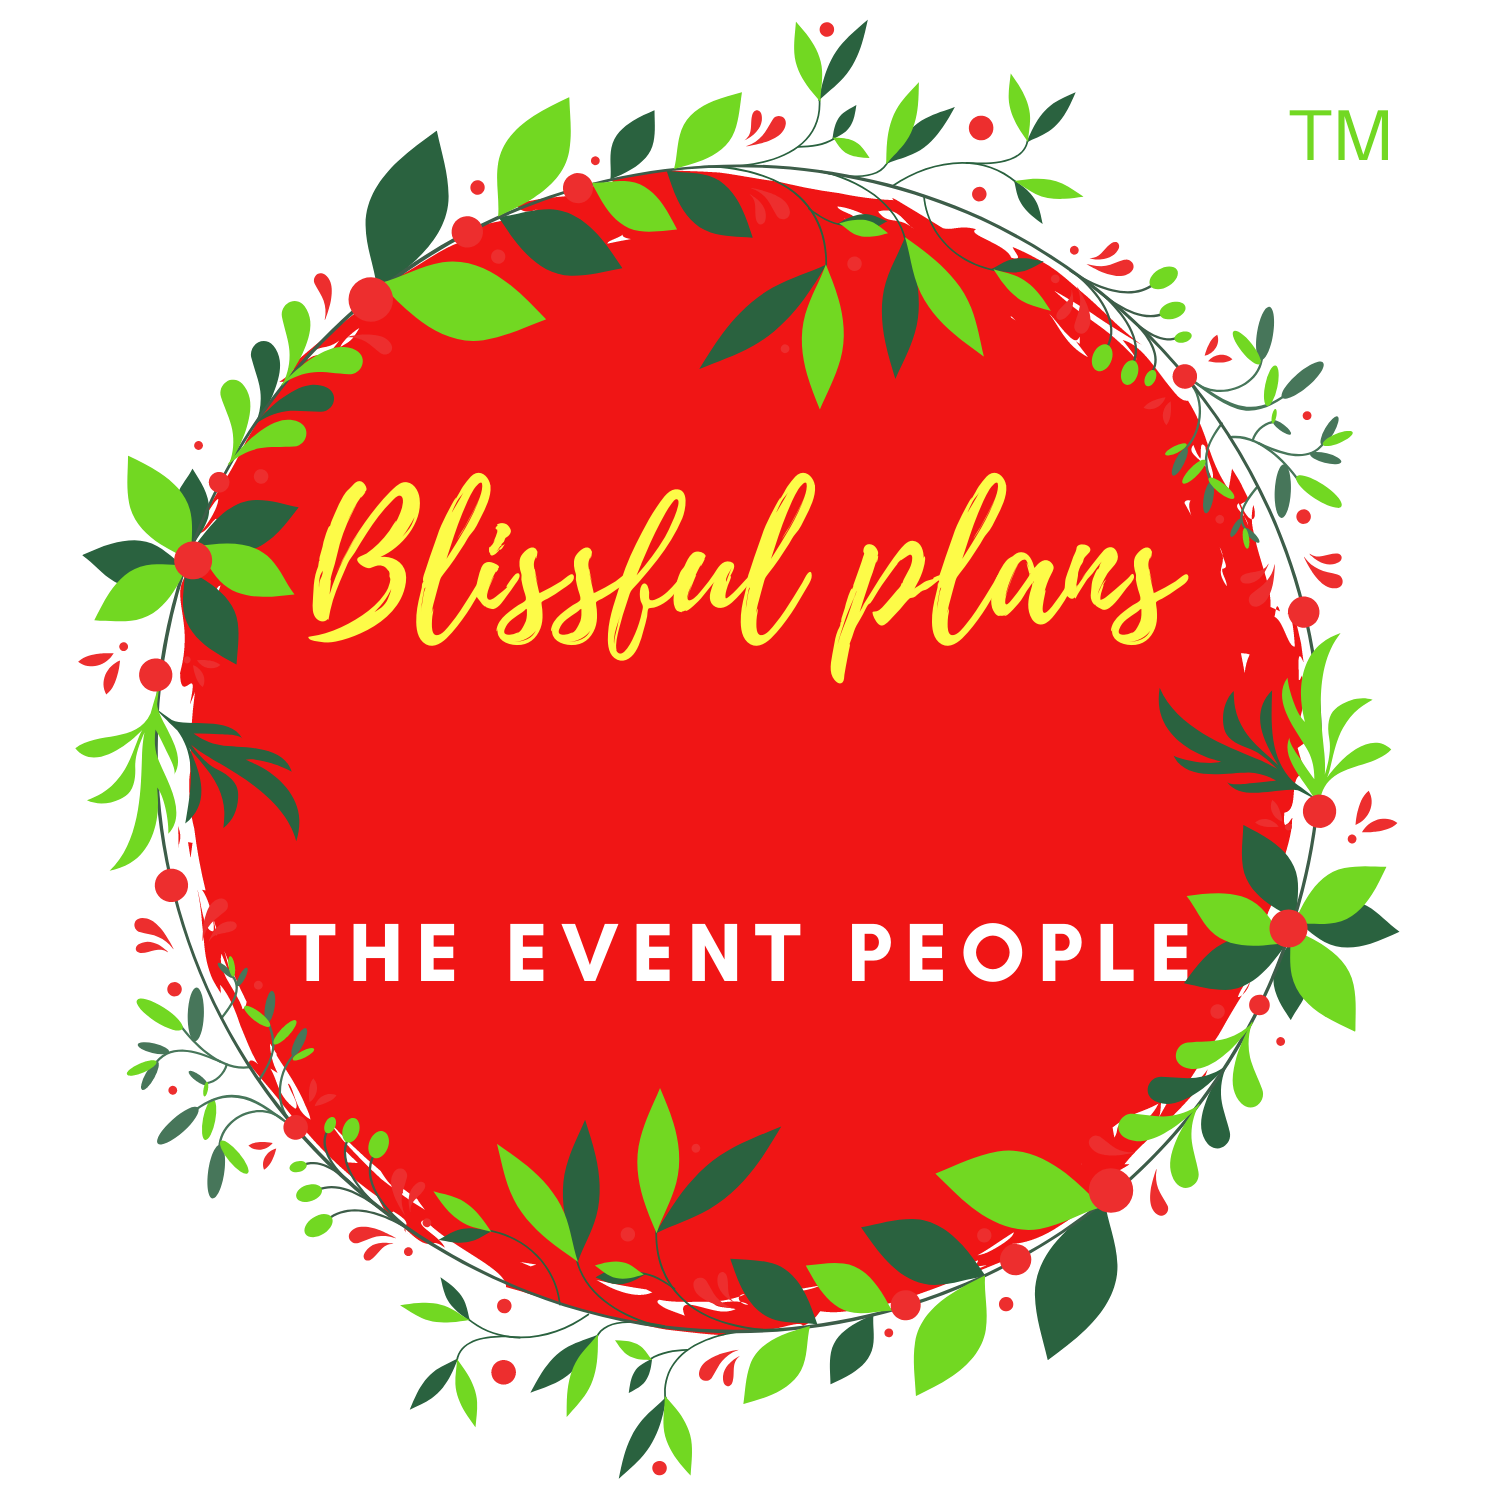 Blissful Plans